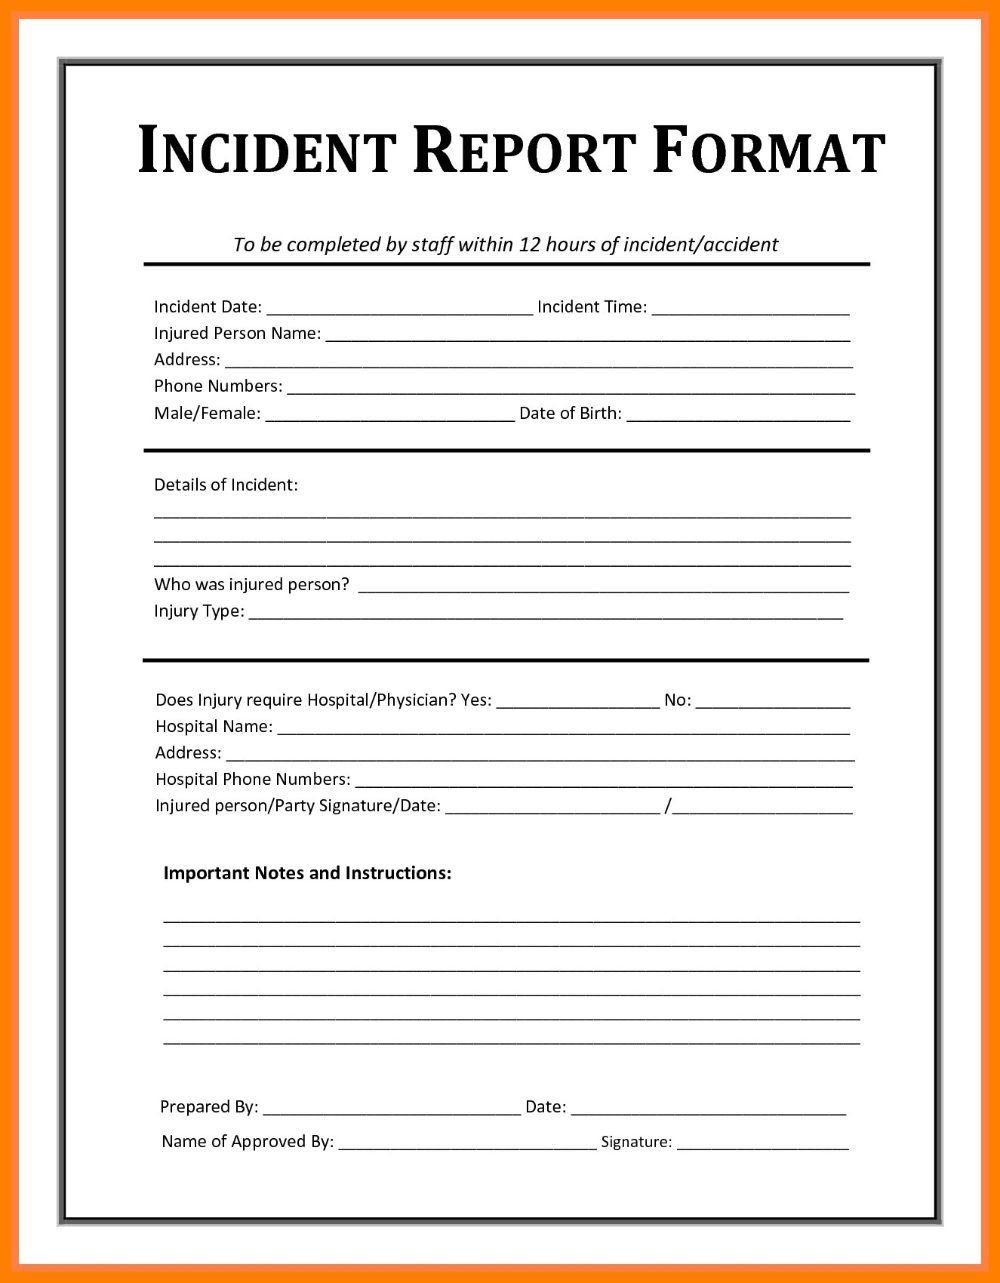 How To Write An Incident Report - arxiusarquitectura Pertaining To Ohs Monthly Report Template